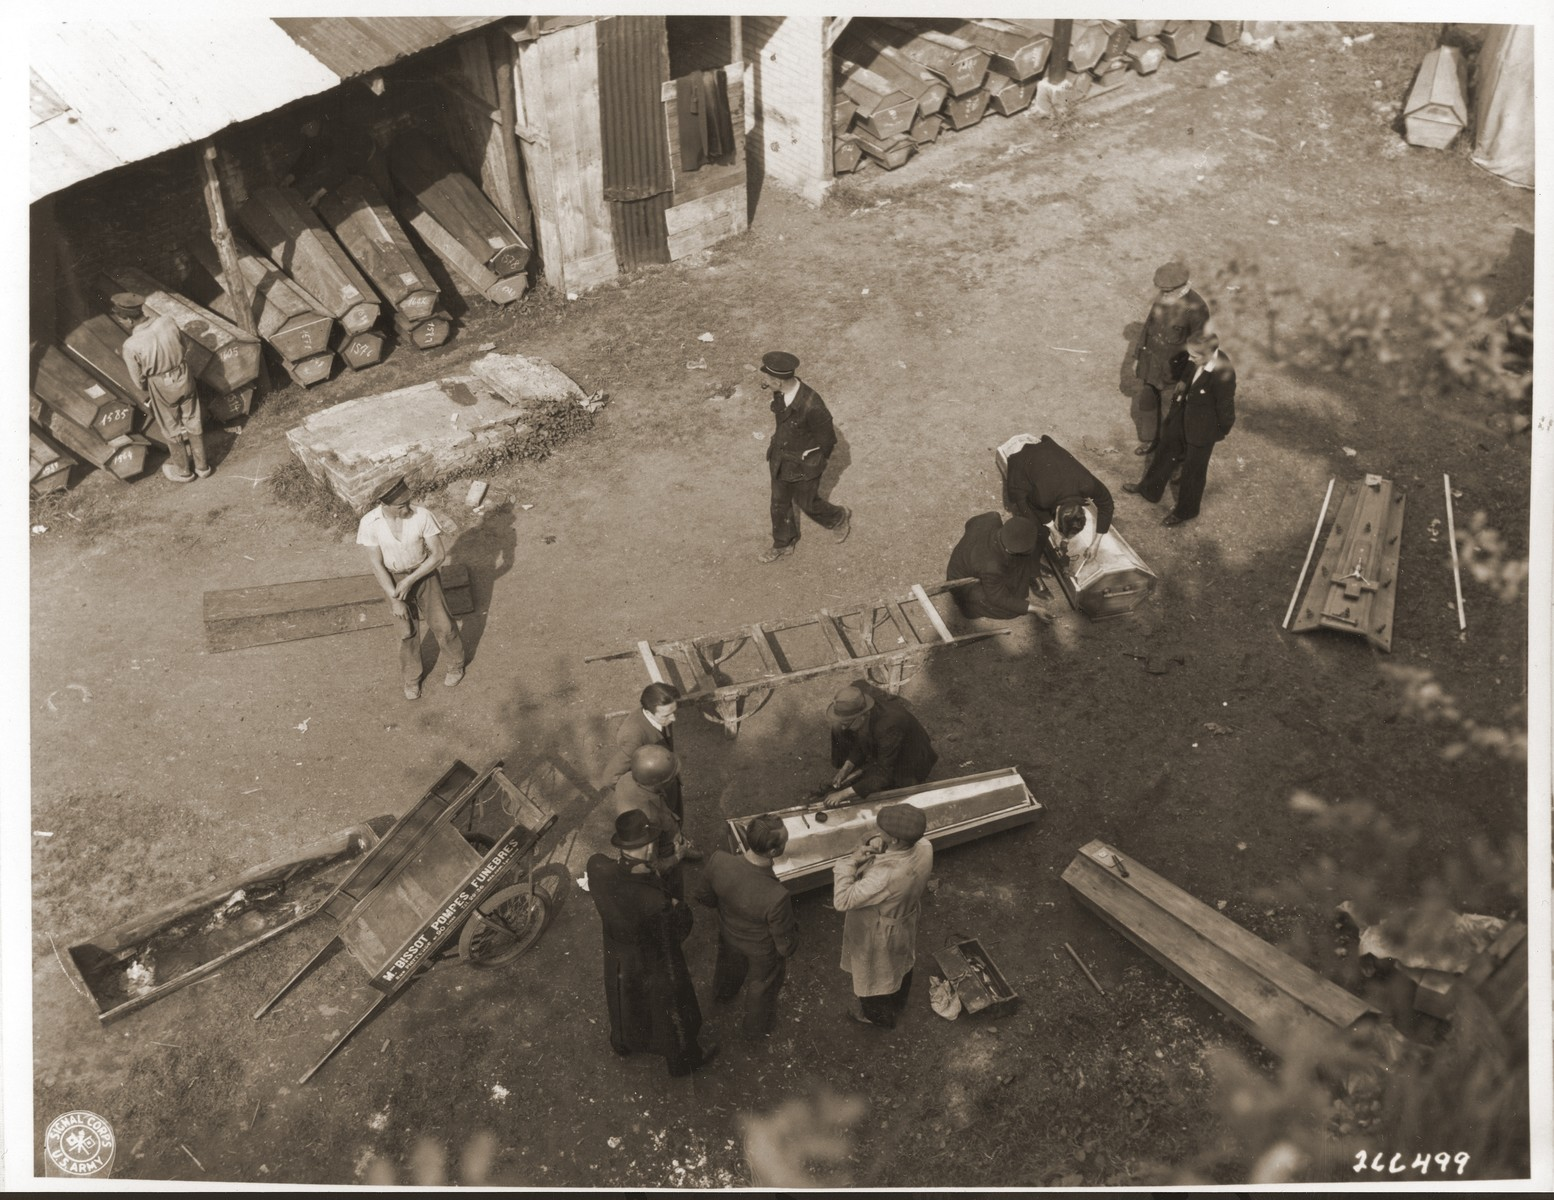 Belgian civilians place the bodies of Belgian political prisoners exhumed from a mass grave into coffins for reburial.